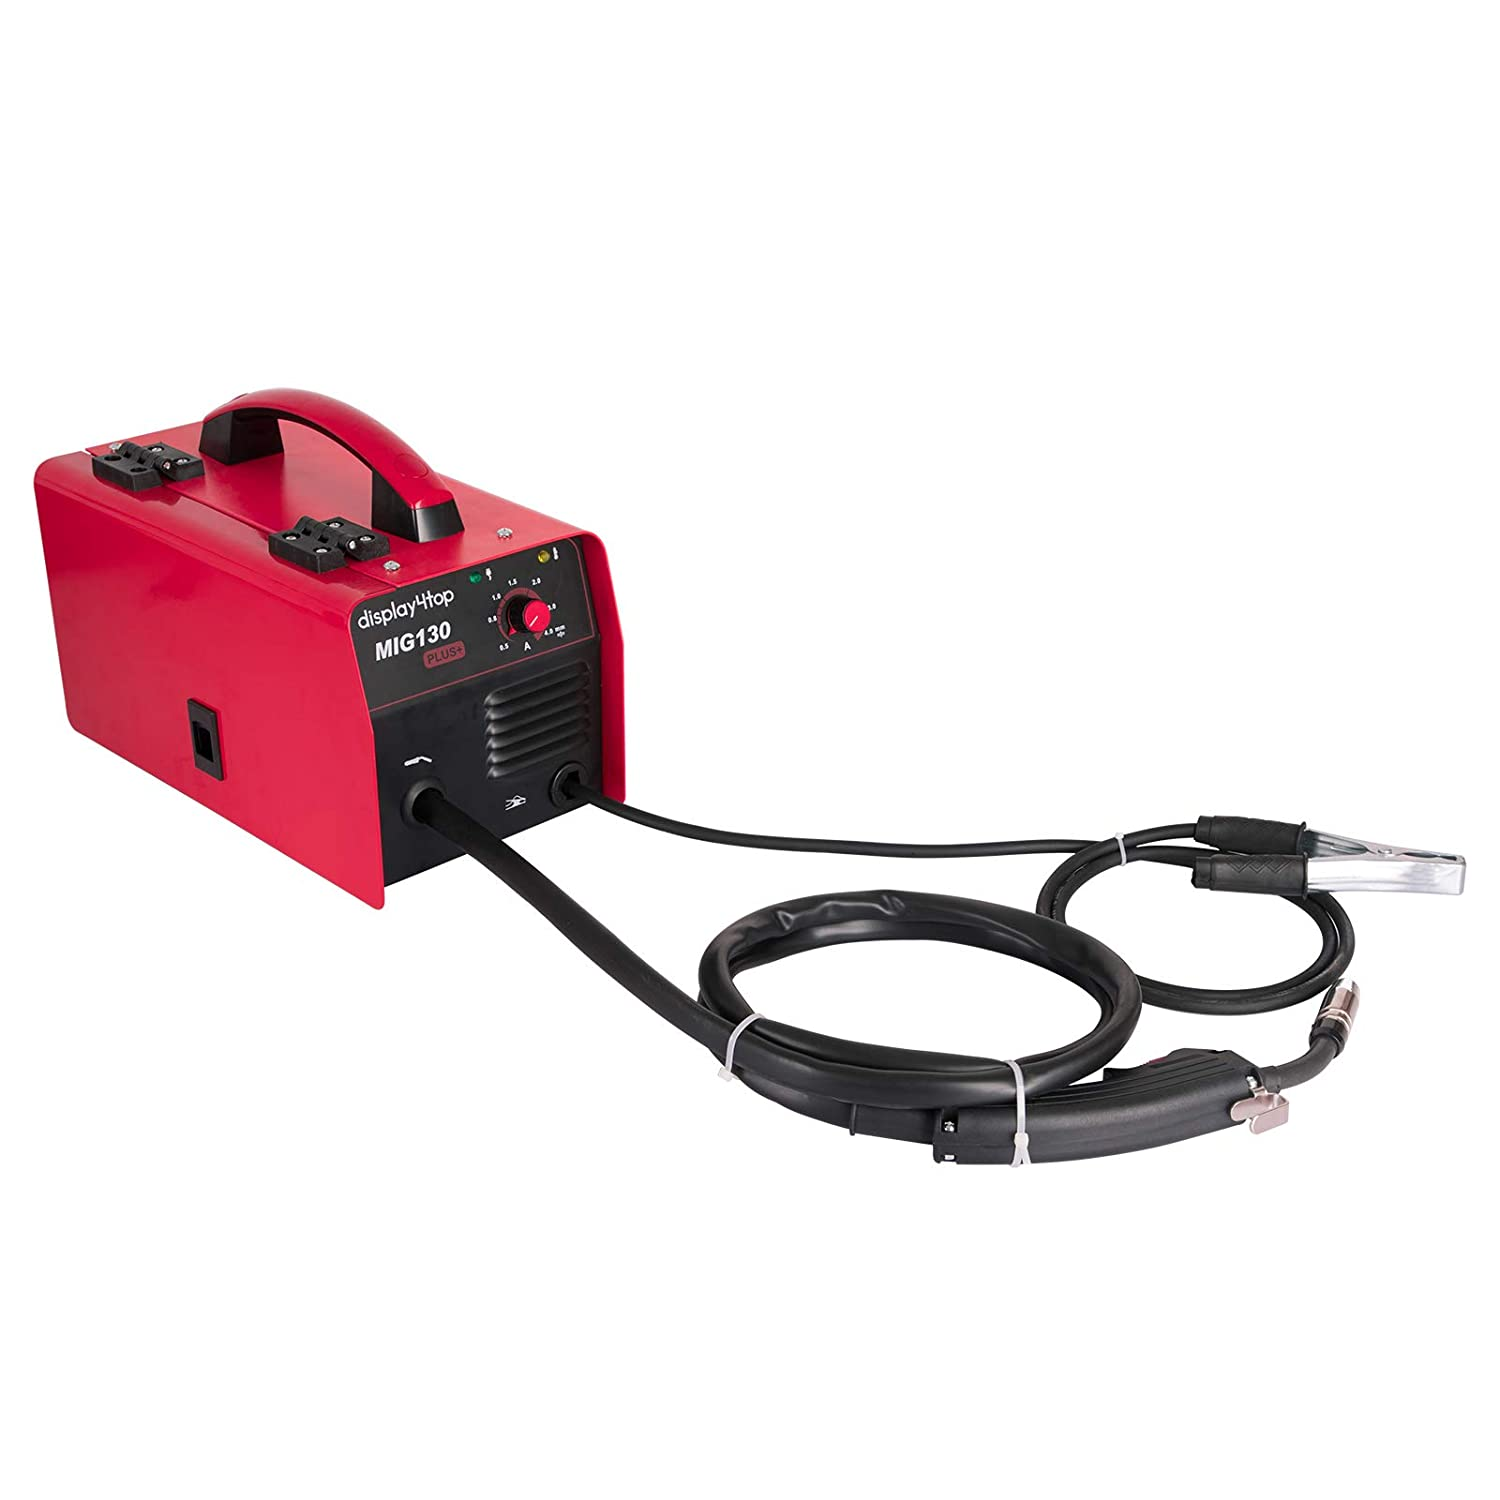 110V Display4top Portable No Gas MIG 130 PLUS Welder Flux Core Wire Automatic Feed Welding Machine,DIY Home Welder w//Free Mask